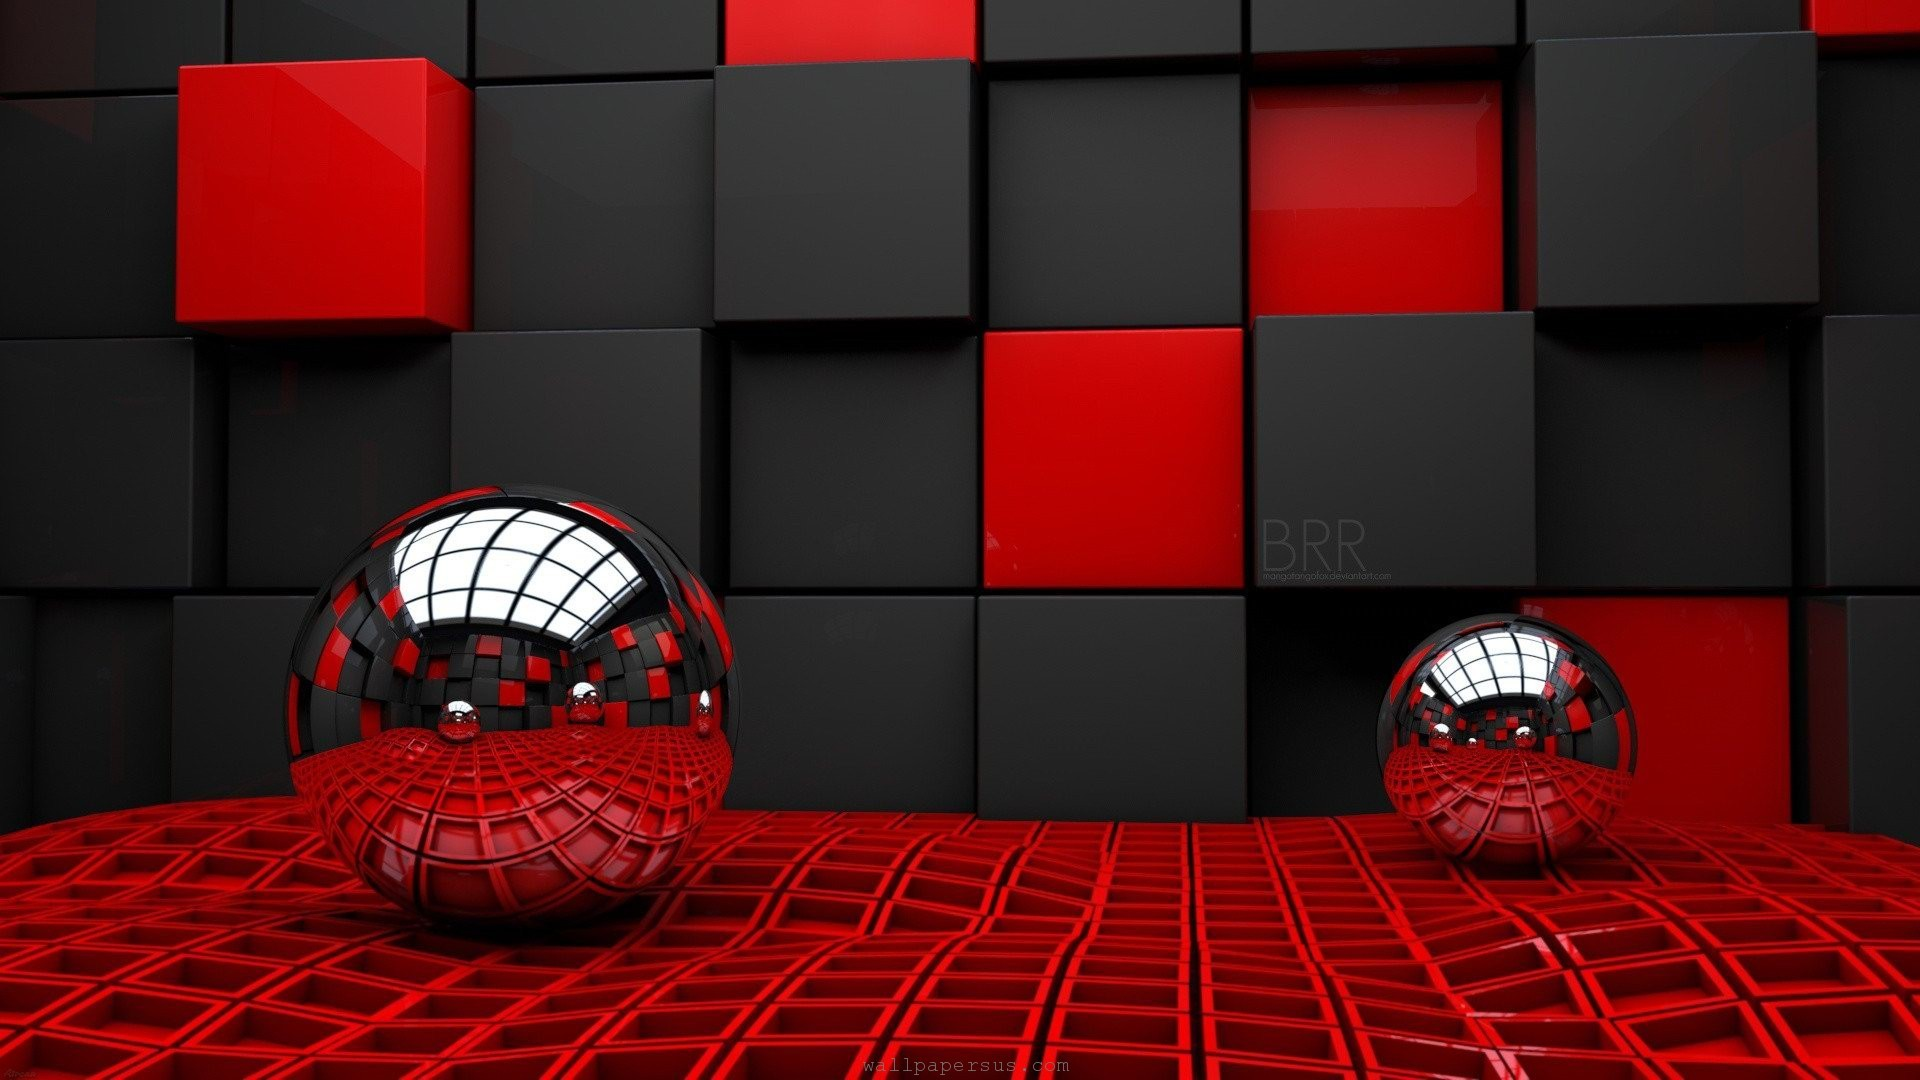 … Black and Red Abstract Wallpaper Backgrounds 1335 | HD Wallpaper Site